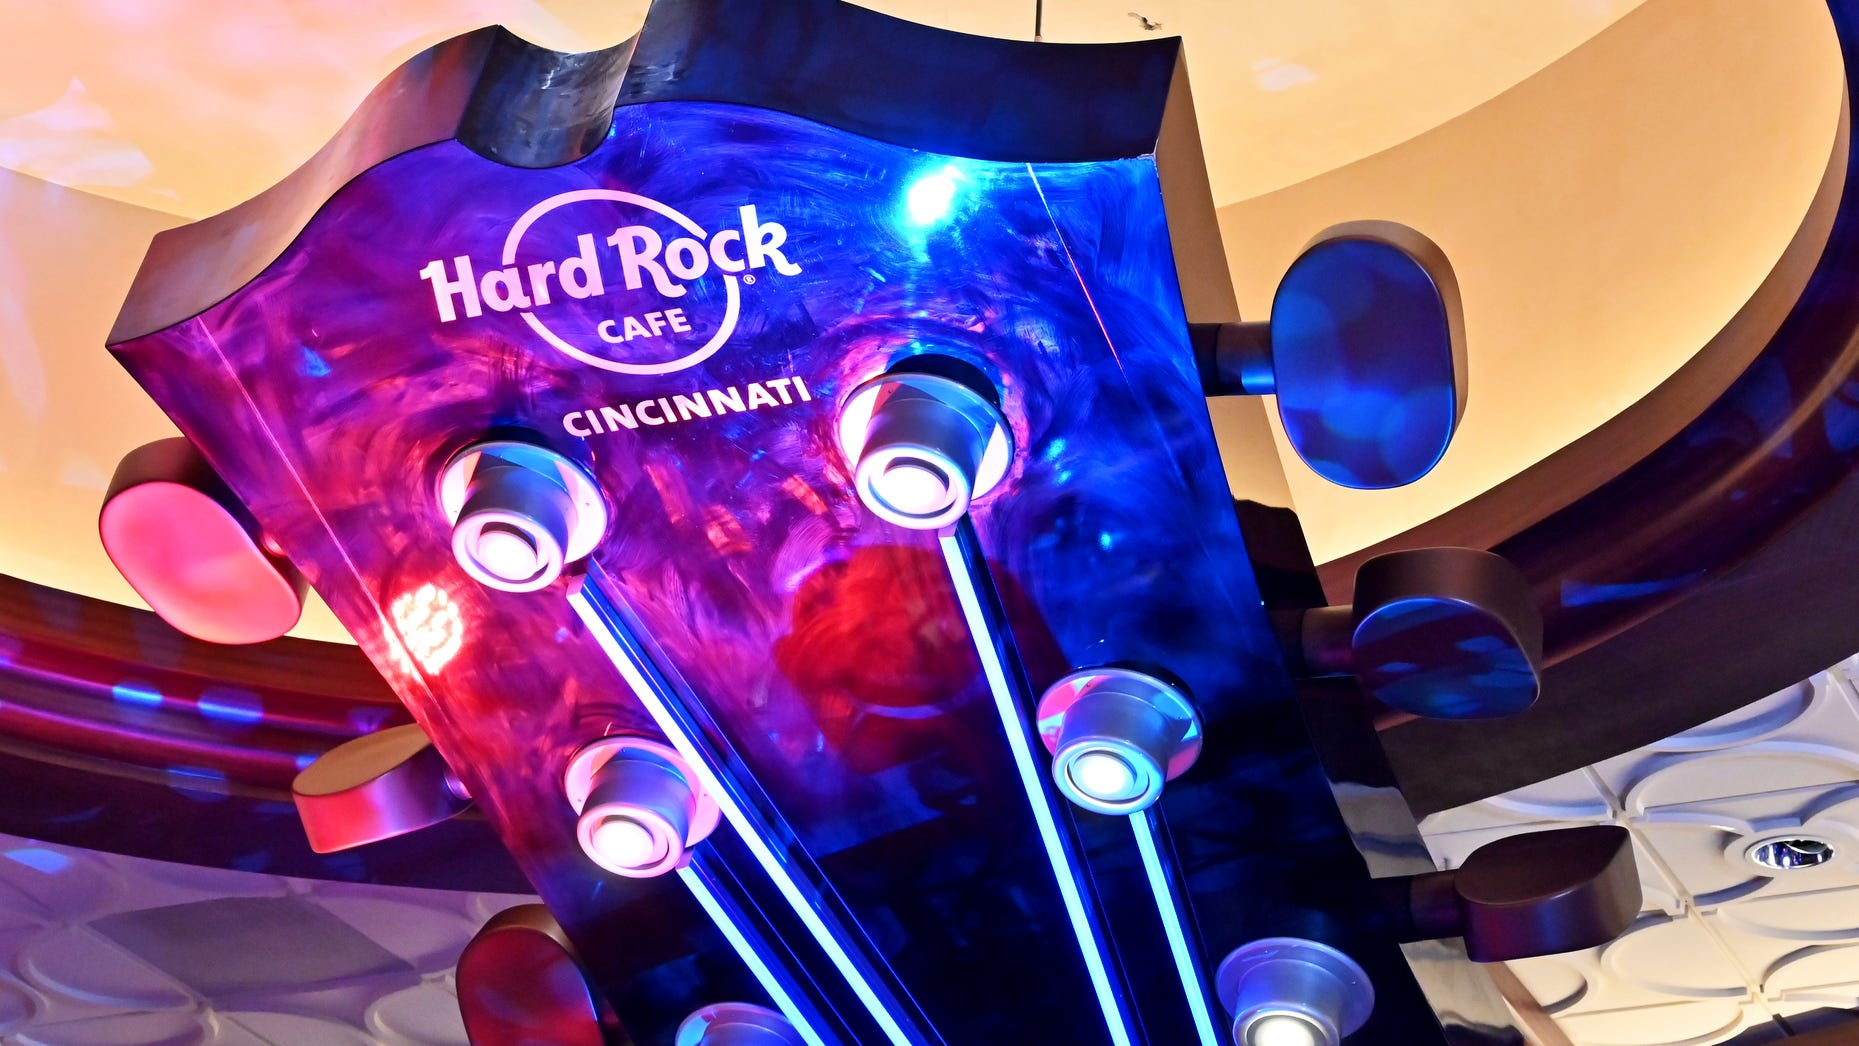 A sculpture of a guitar hangs at the front of the Hard Rock Cafe during its official opening July 15 inside the Hard Rock Casino Cincinnati.